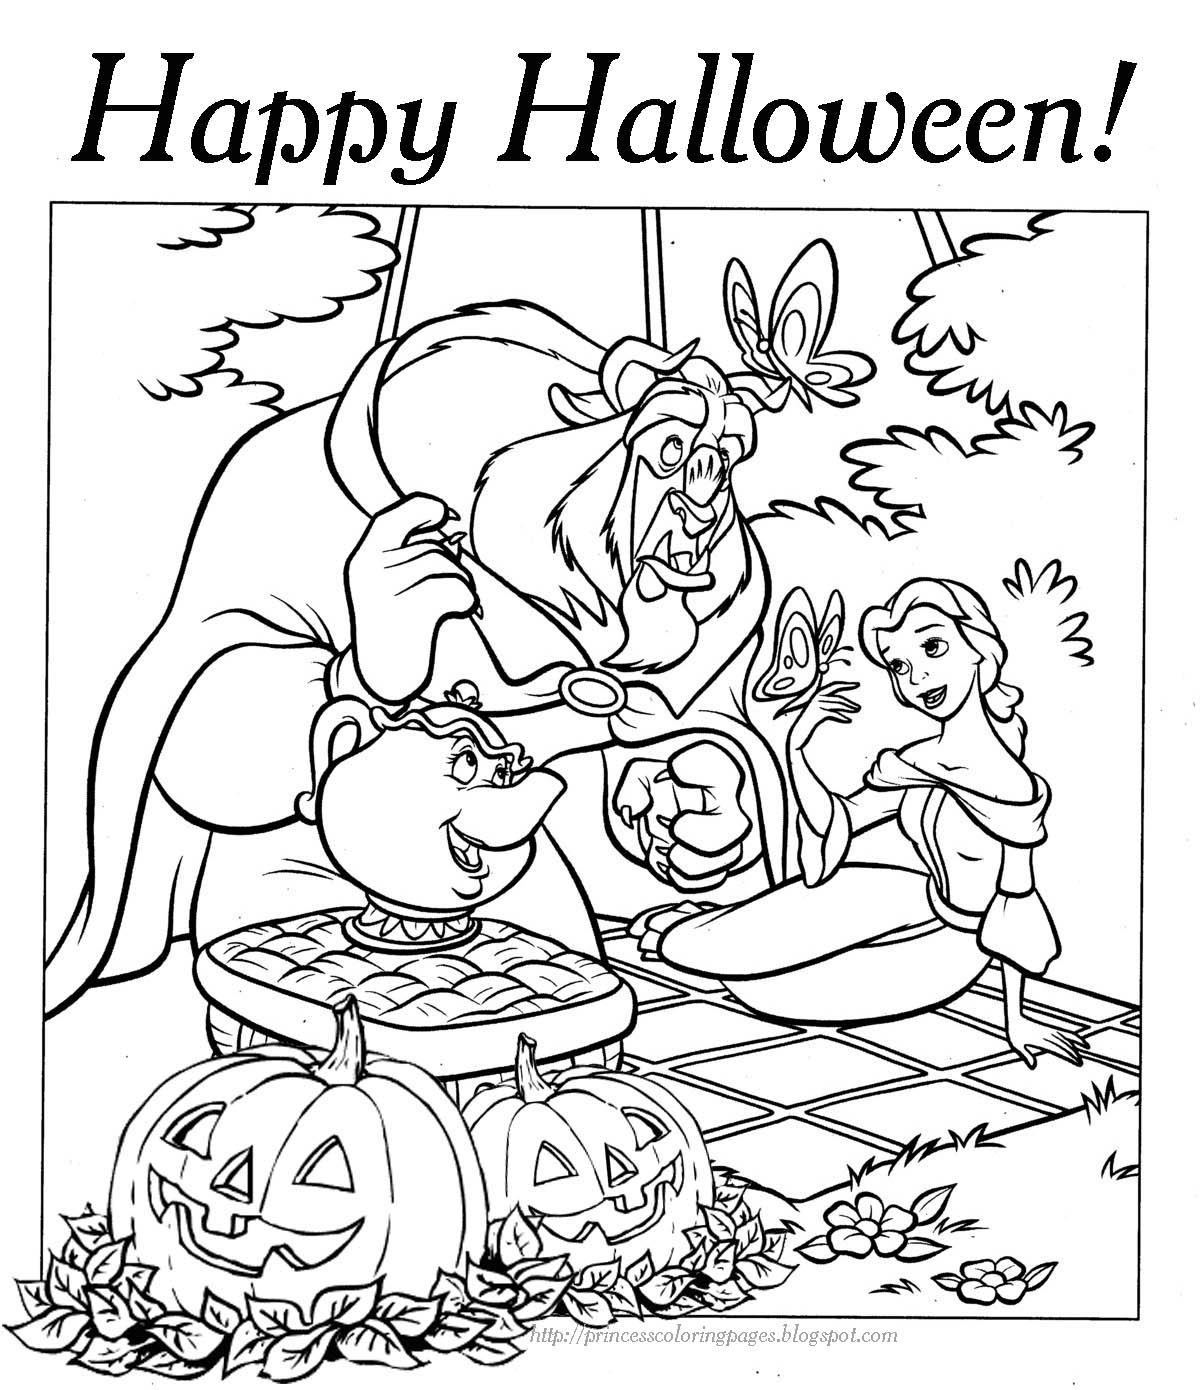 printable coloring pages halloween | PRINCESS COLORING PAGES